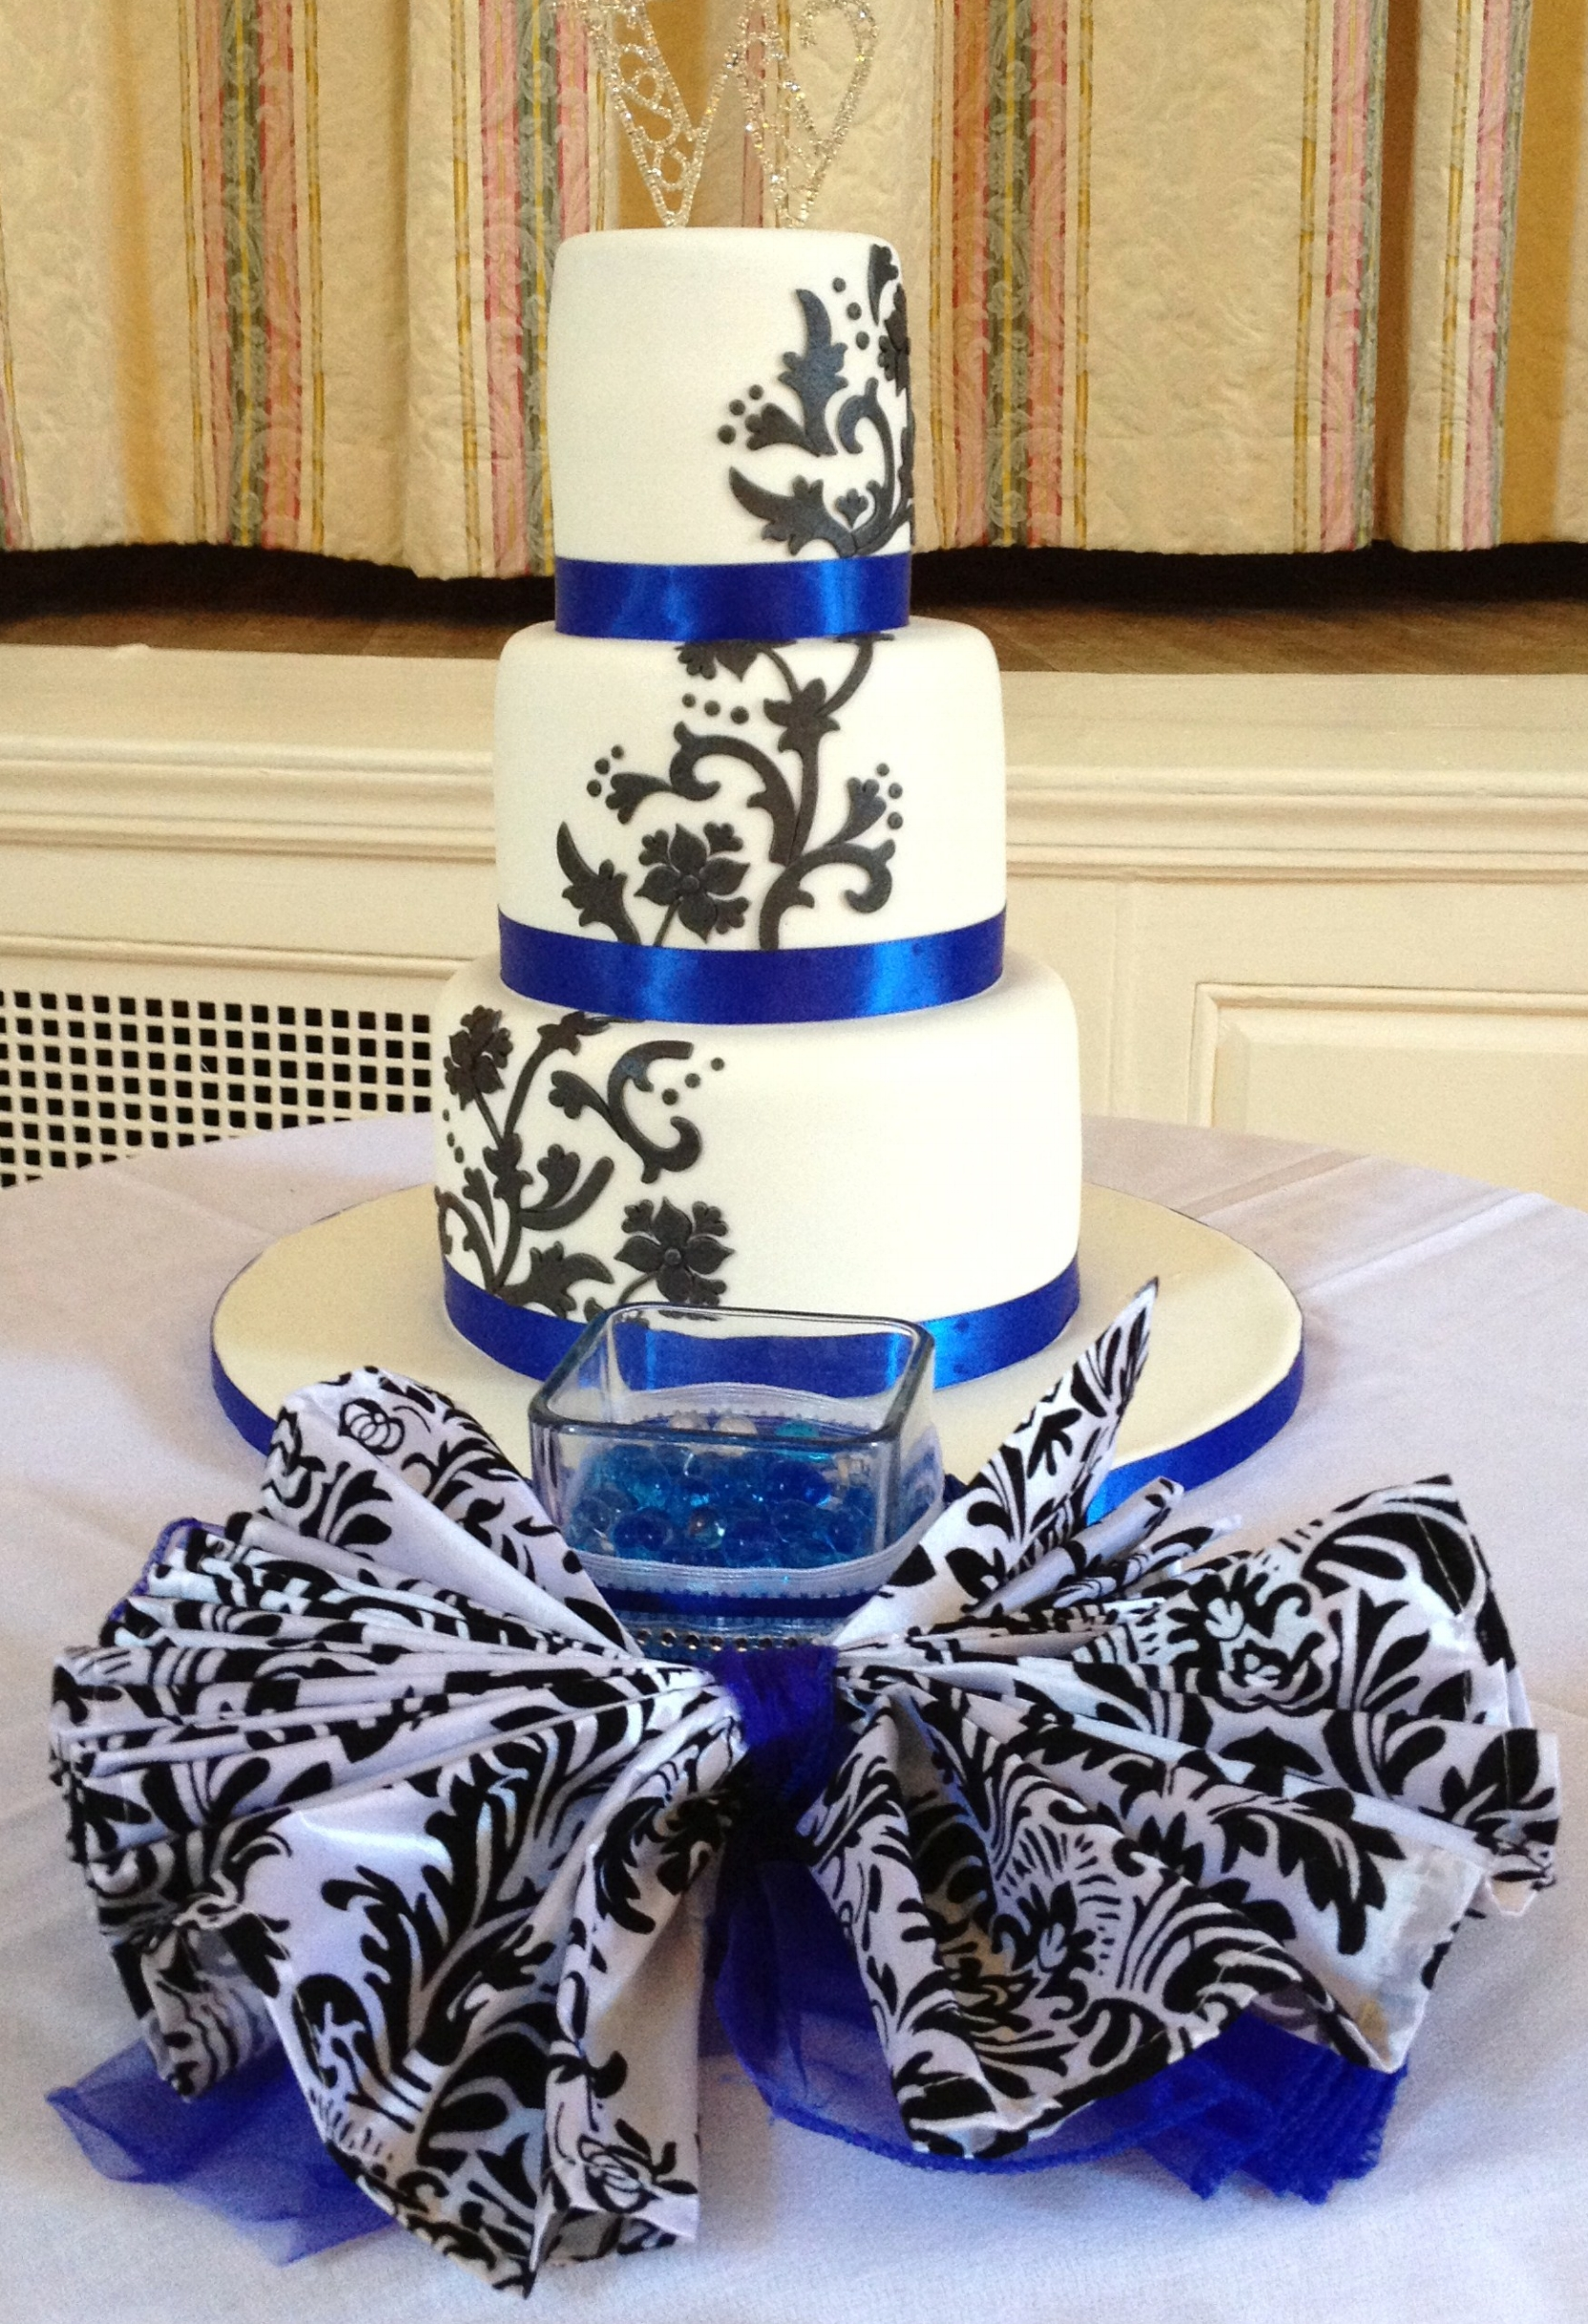 A damask wedding